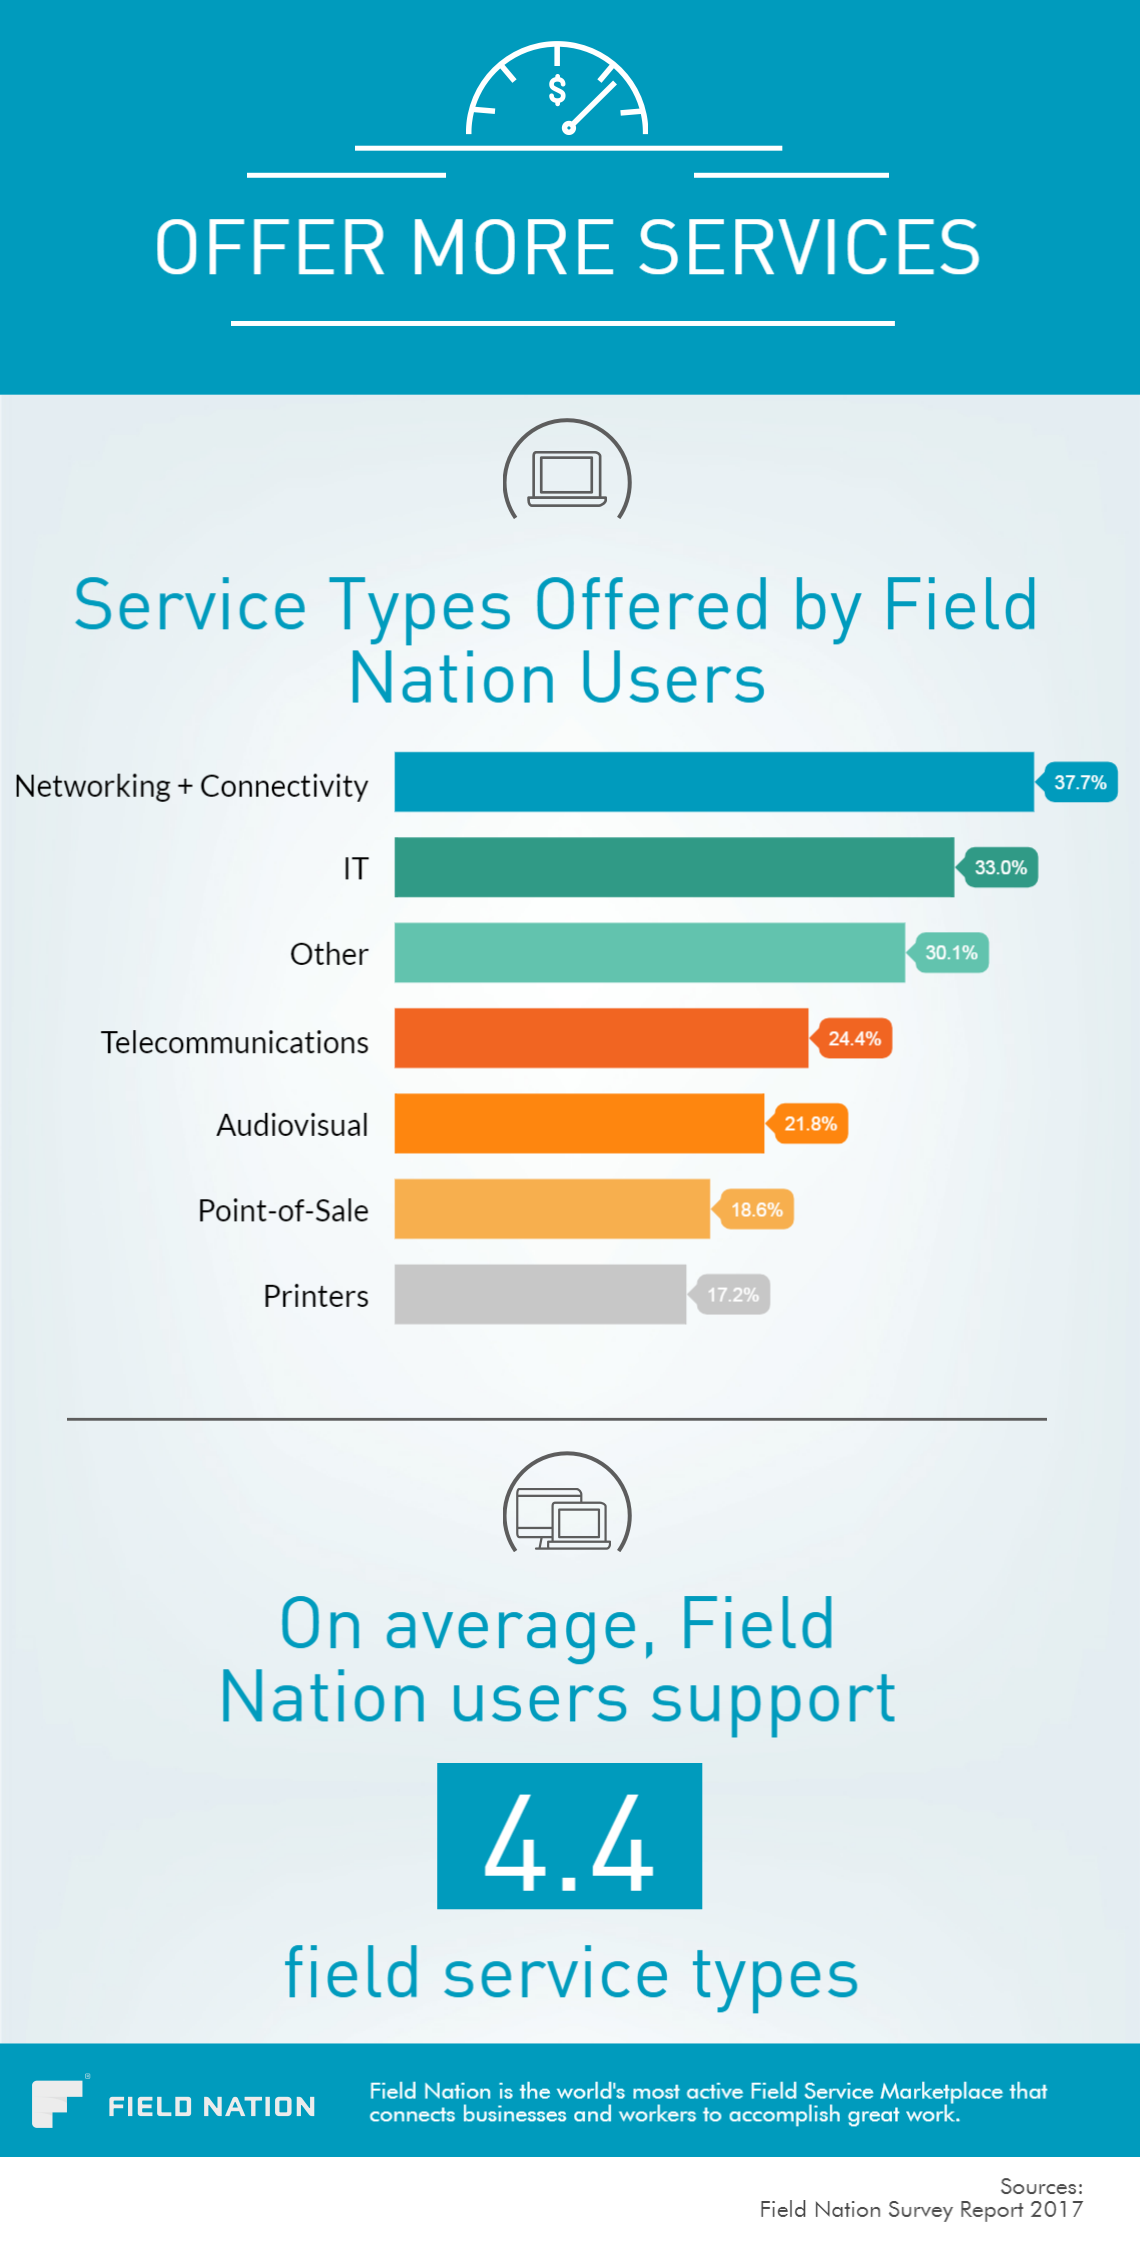 Service Types Offered by Field Nation Users